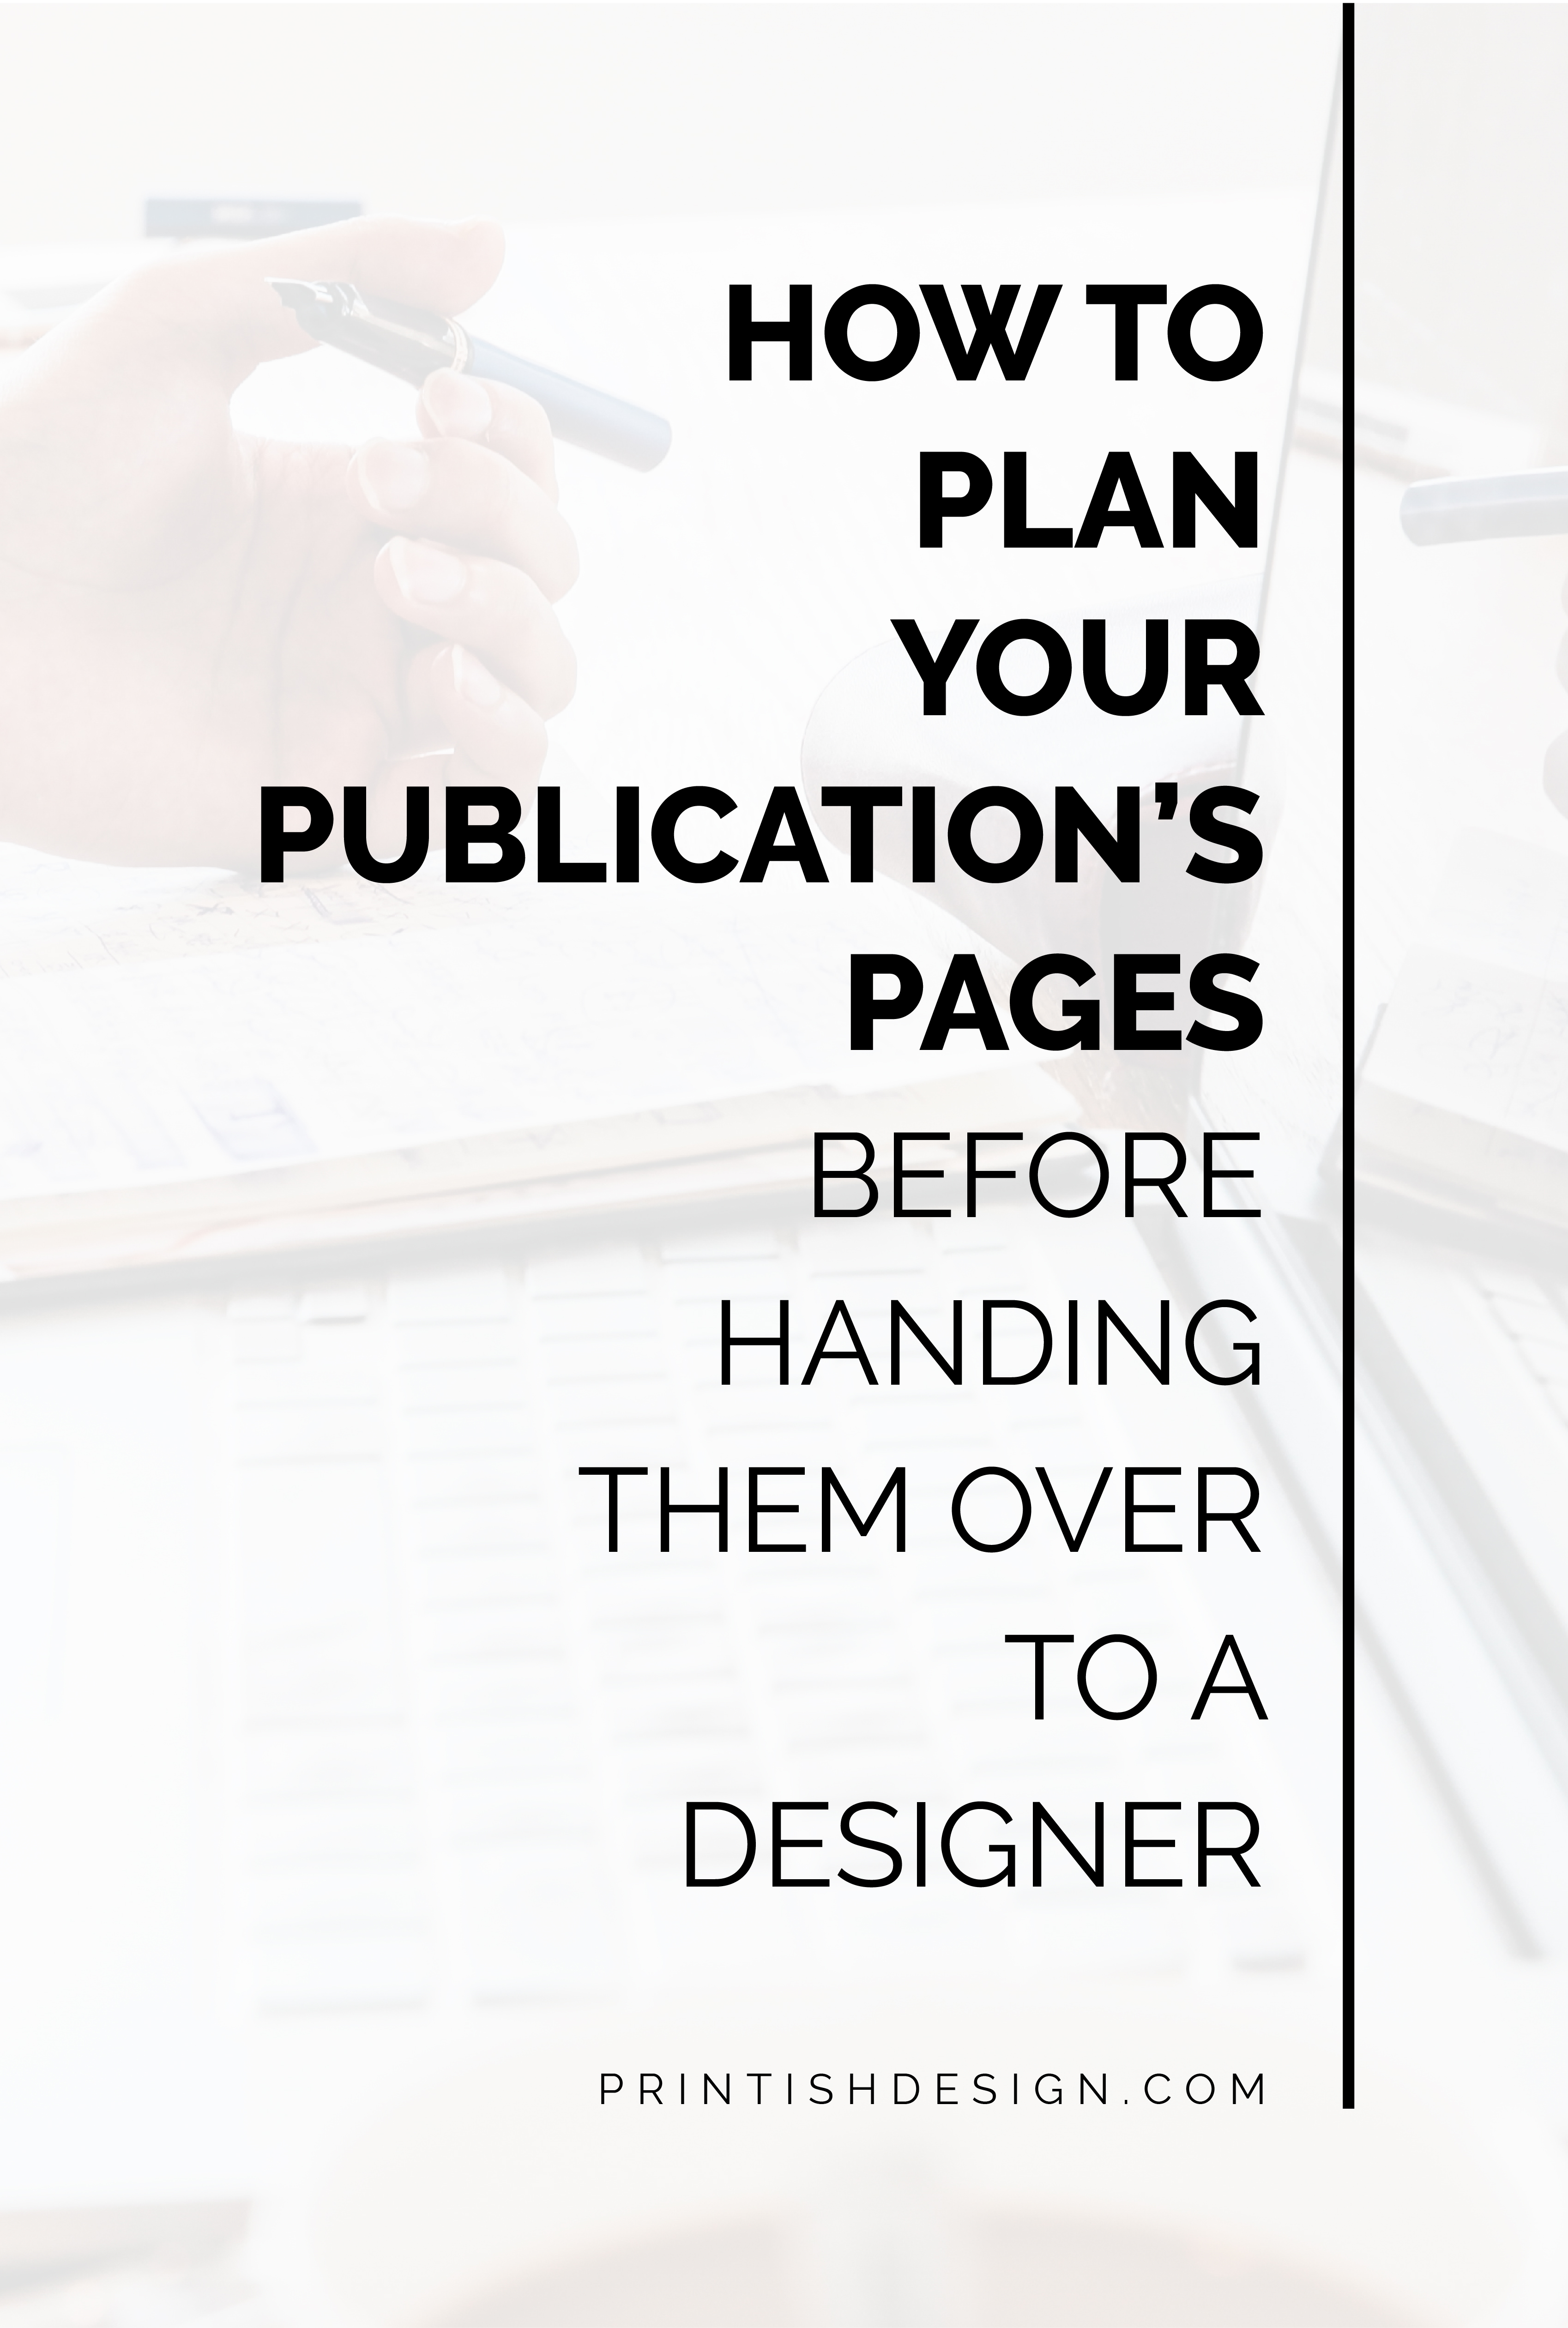 How to Plan Your Publication's Pages Before Giving Them to a Designer